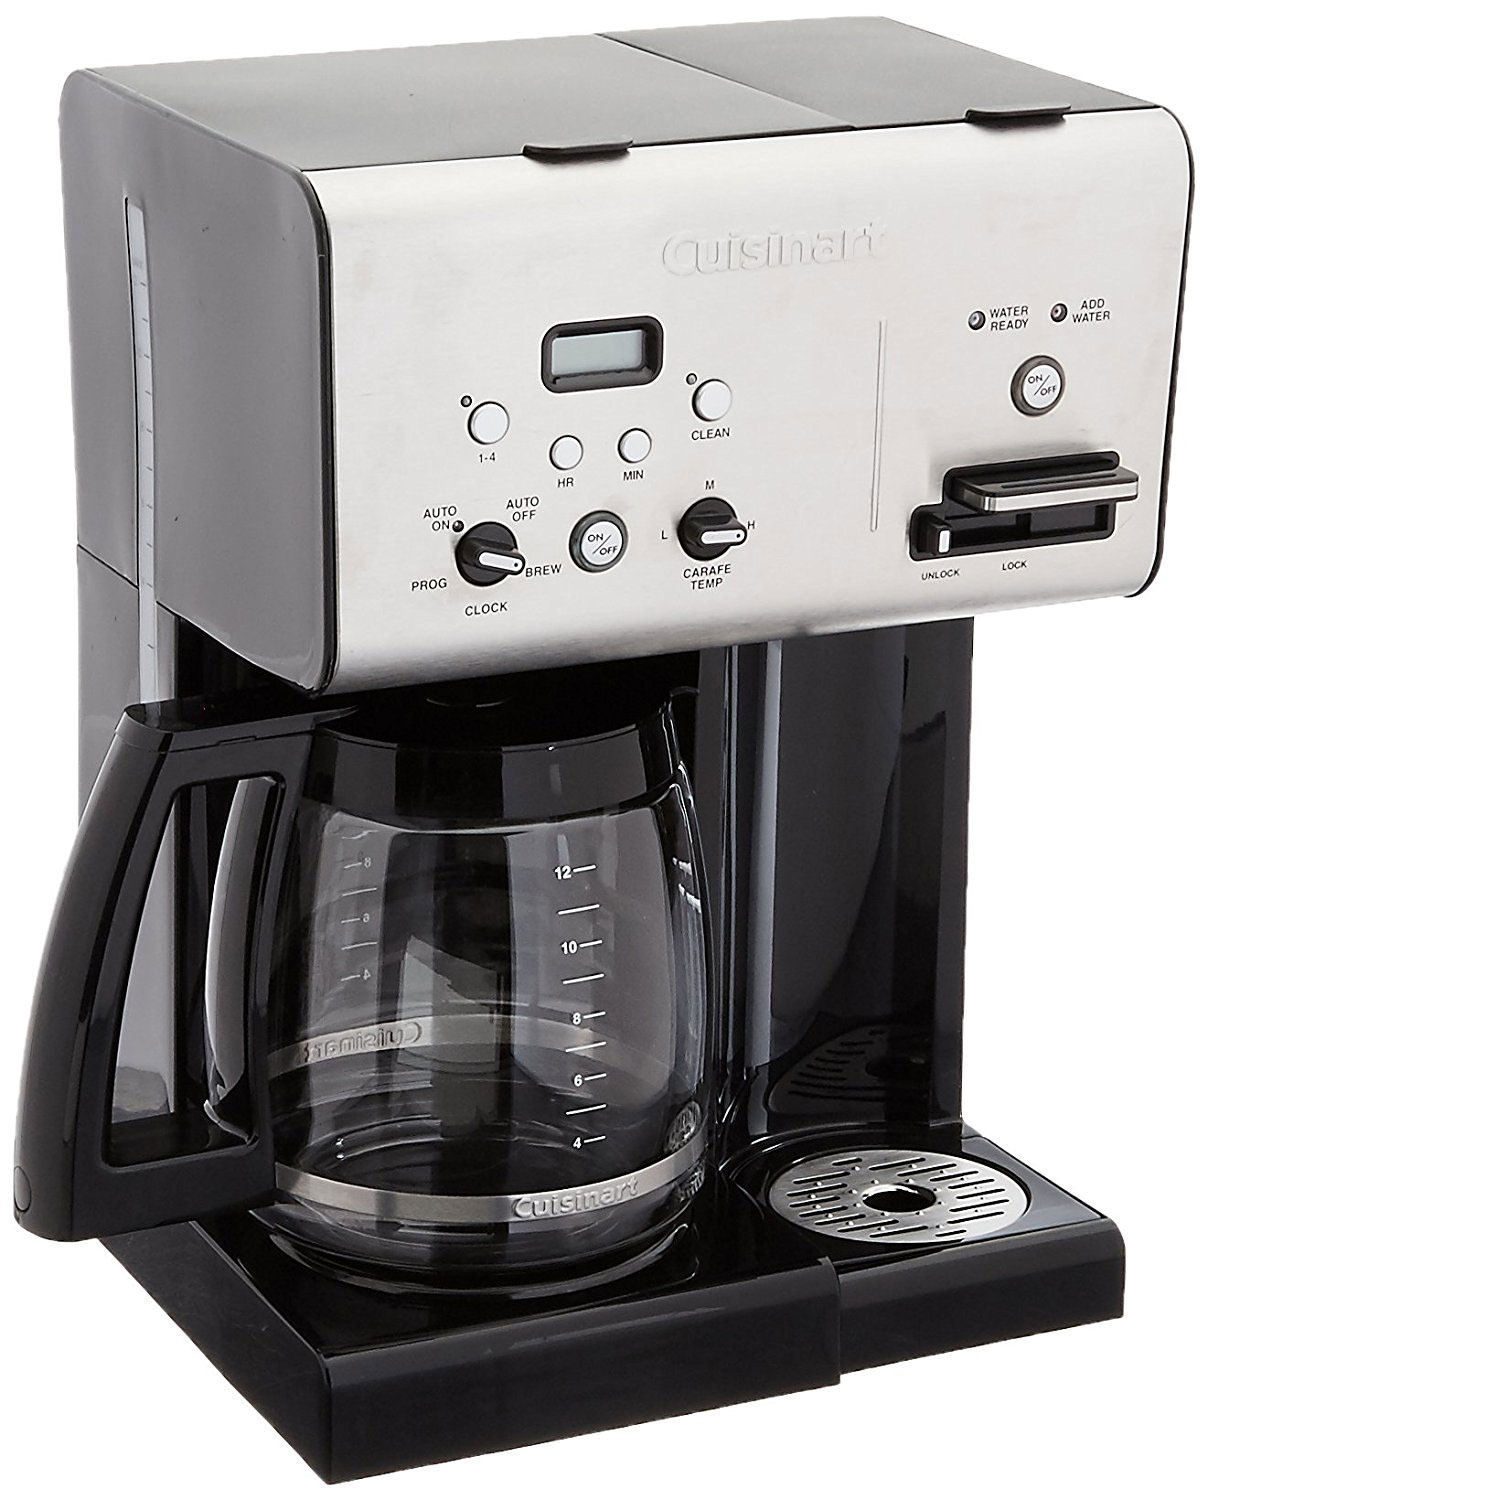 Cuisinart Coffee Plus 12 Cup Programmable Coffeemaker (Certified Refurbished)